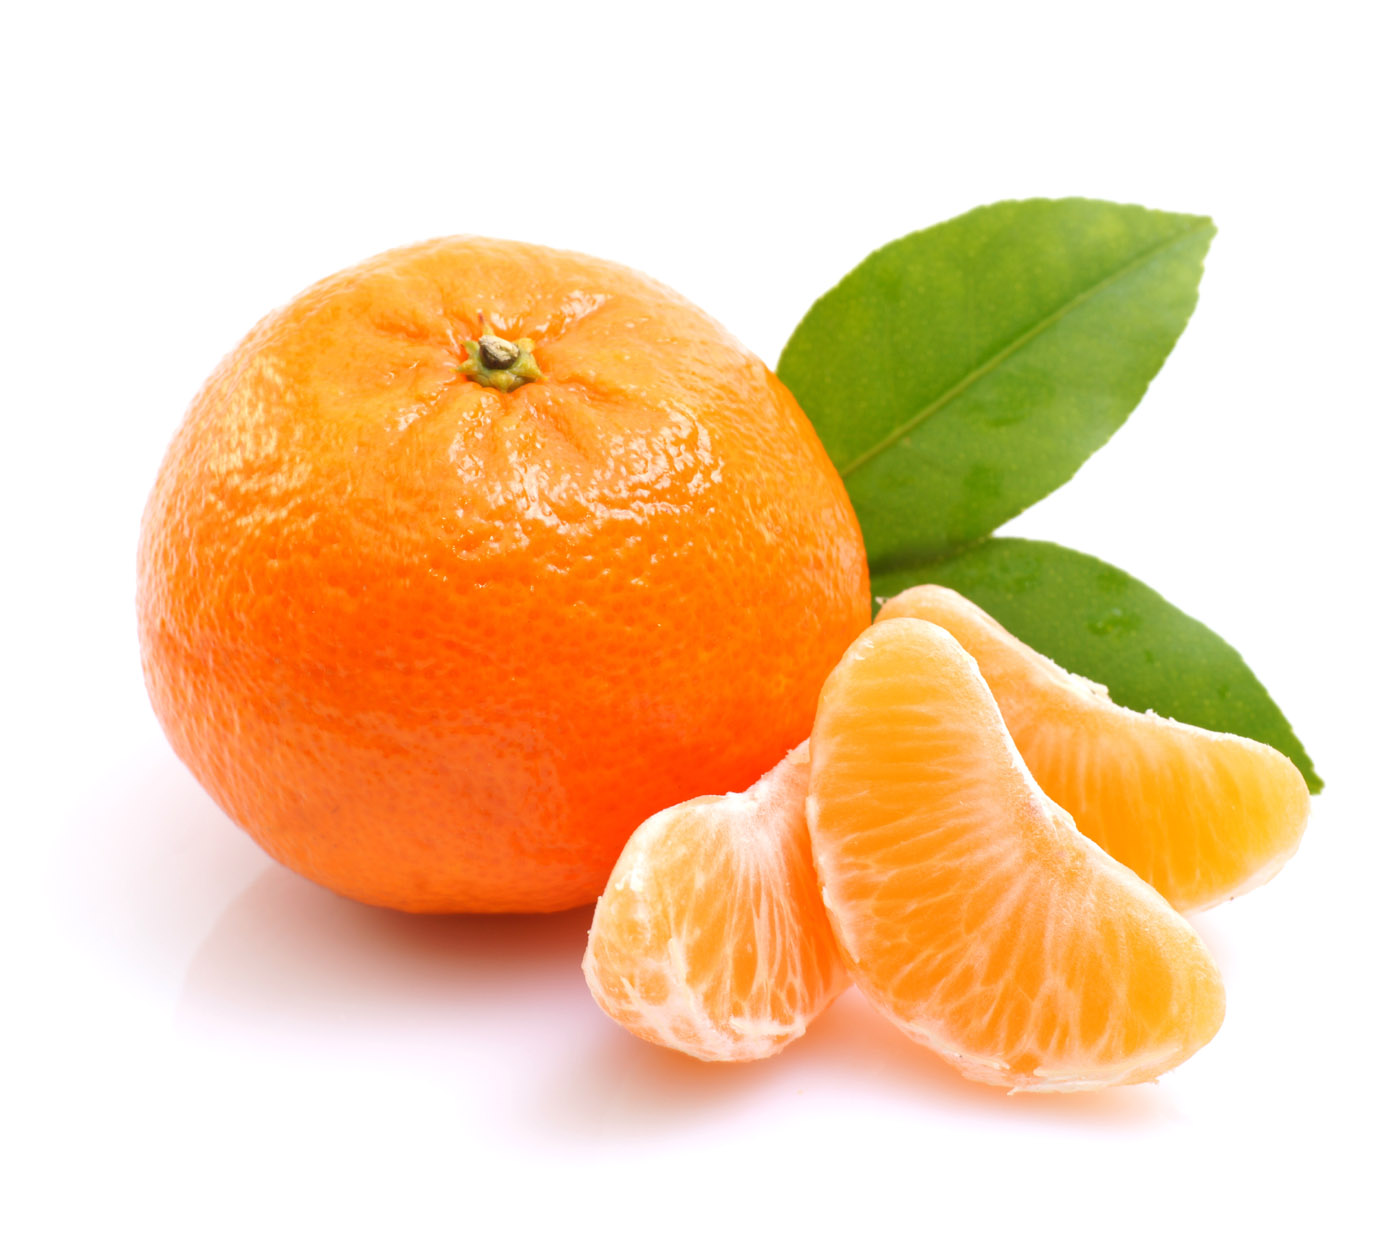 Citrus is astringent, which makes it great for breaking up the mucus in the body, and flushing it out.